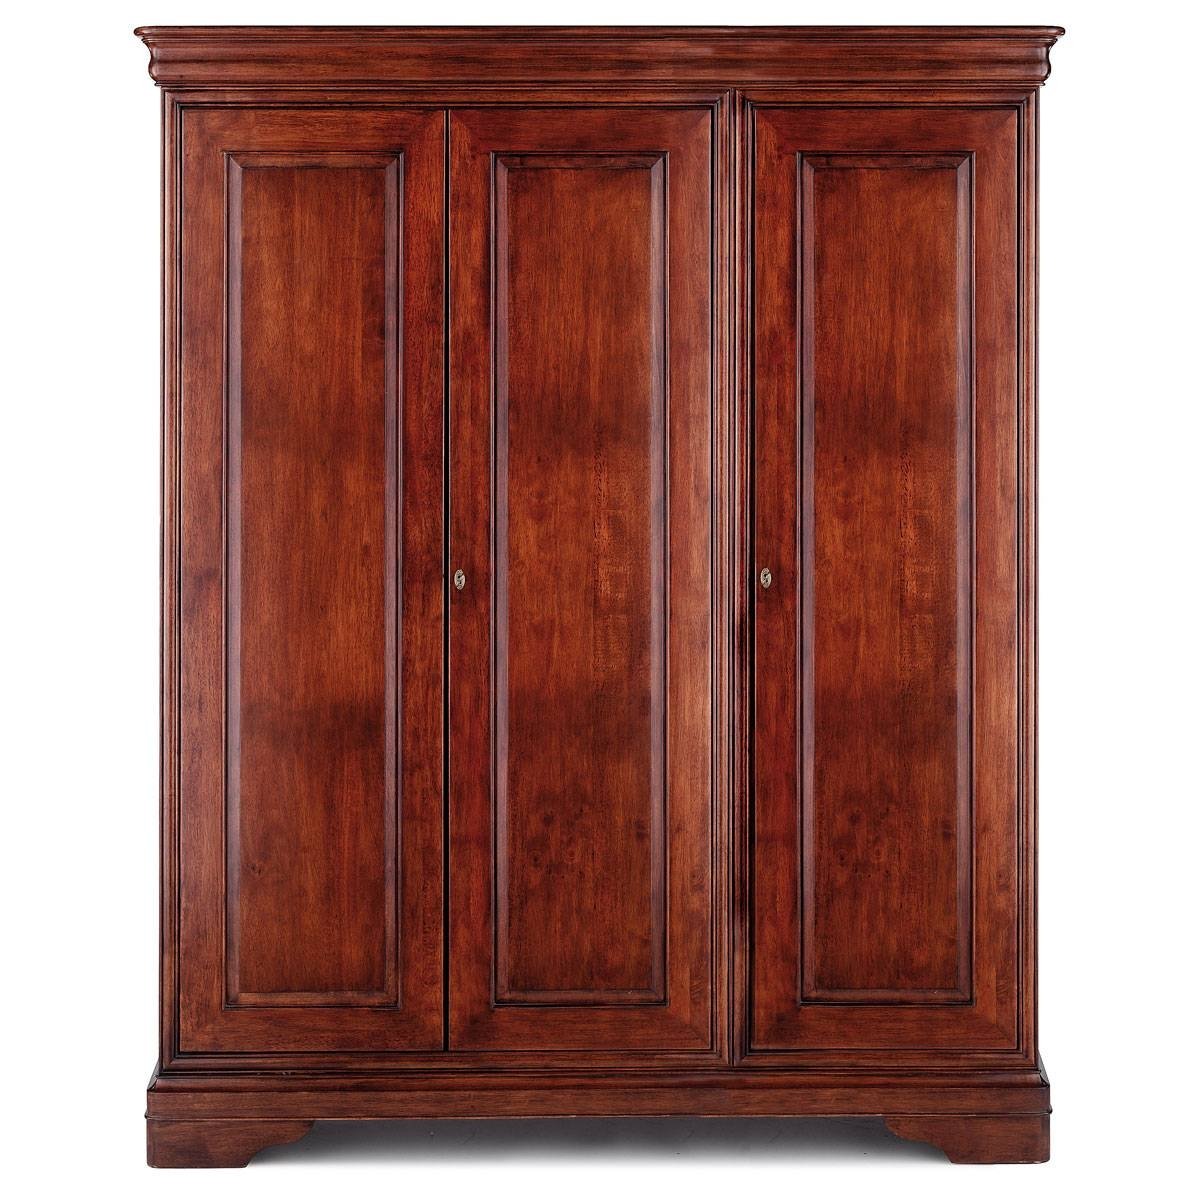 Antoinette Triple Wardrobe – Willis & Gambier With Willis And Gambier Wardrobes (View 7 of 15)